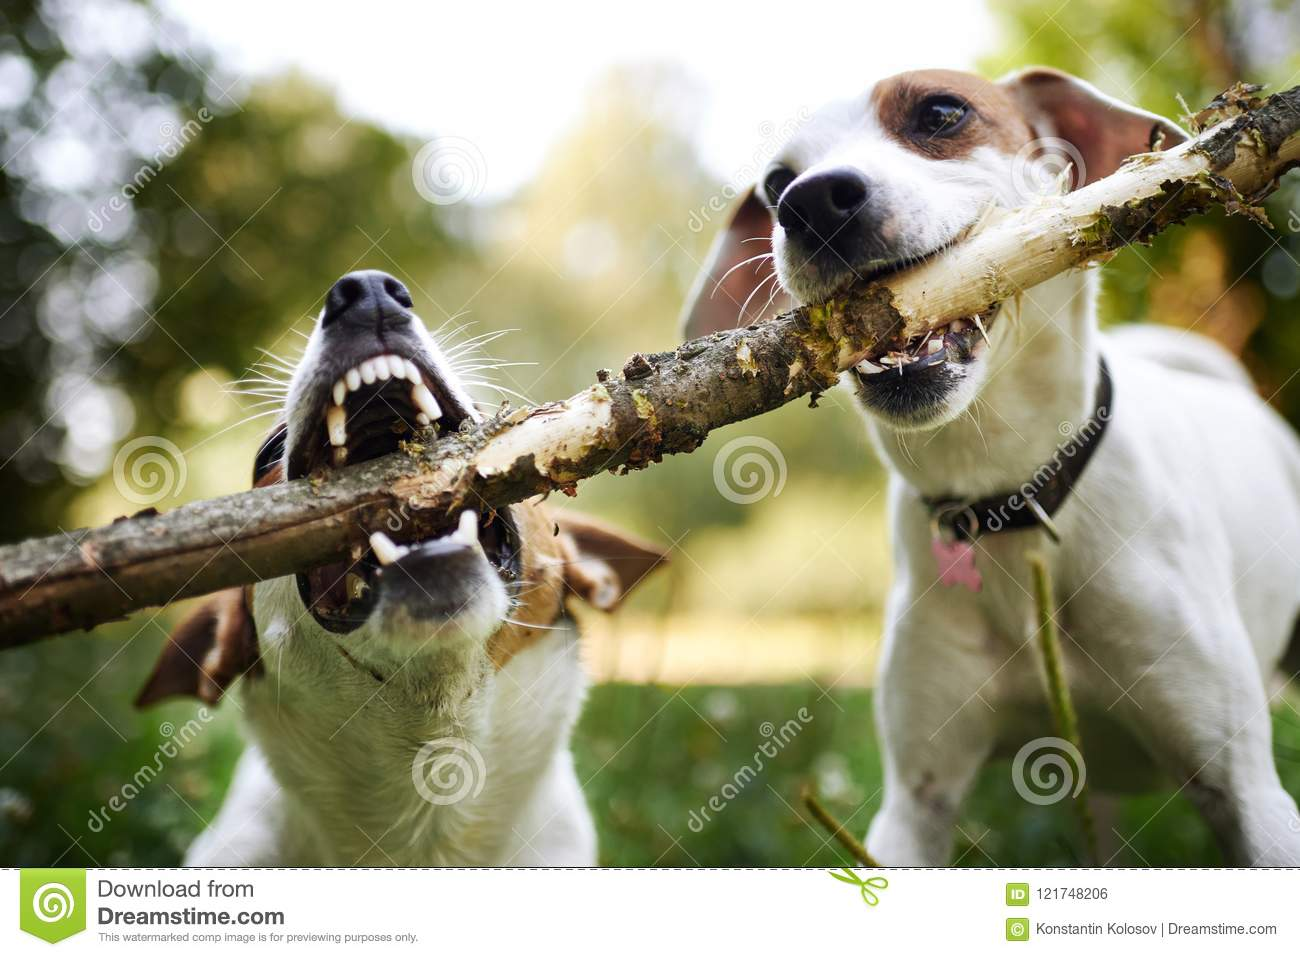 Jack russells fight over stick